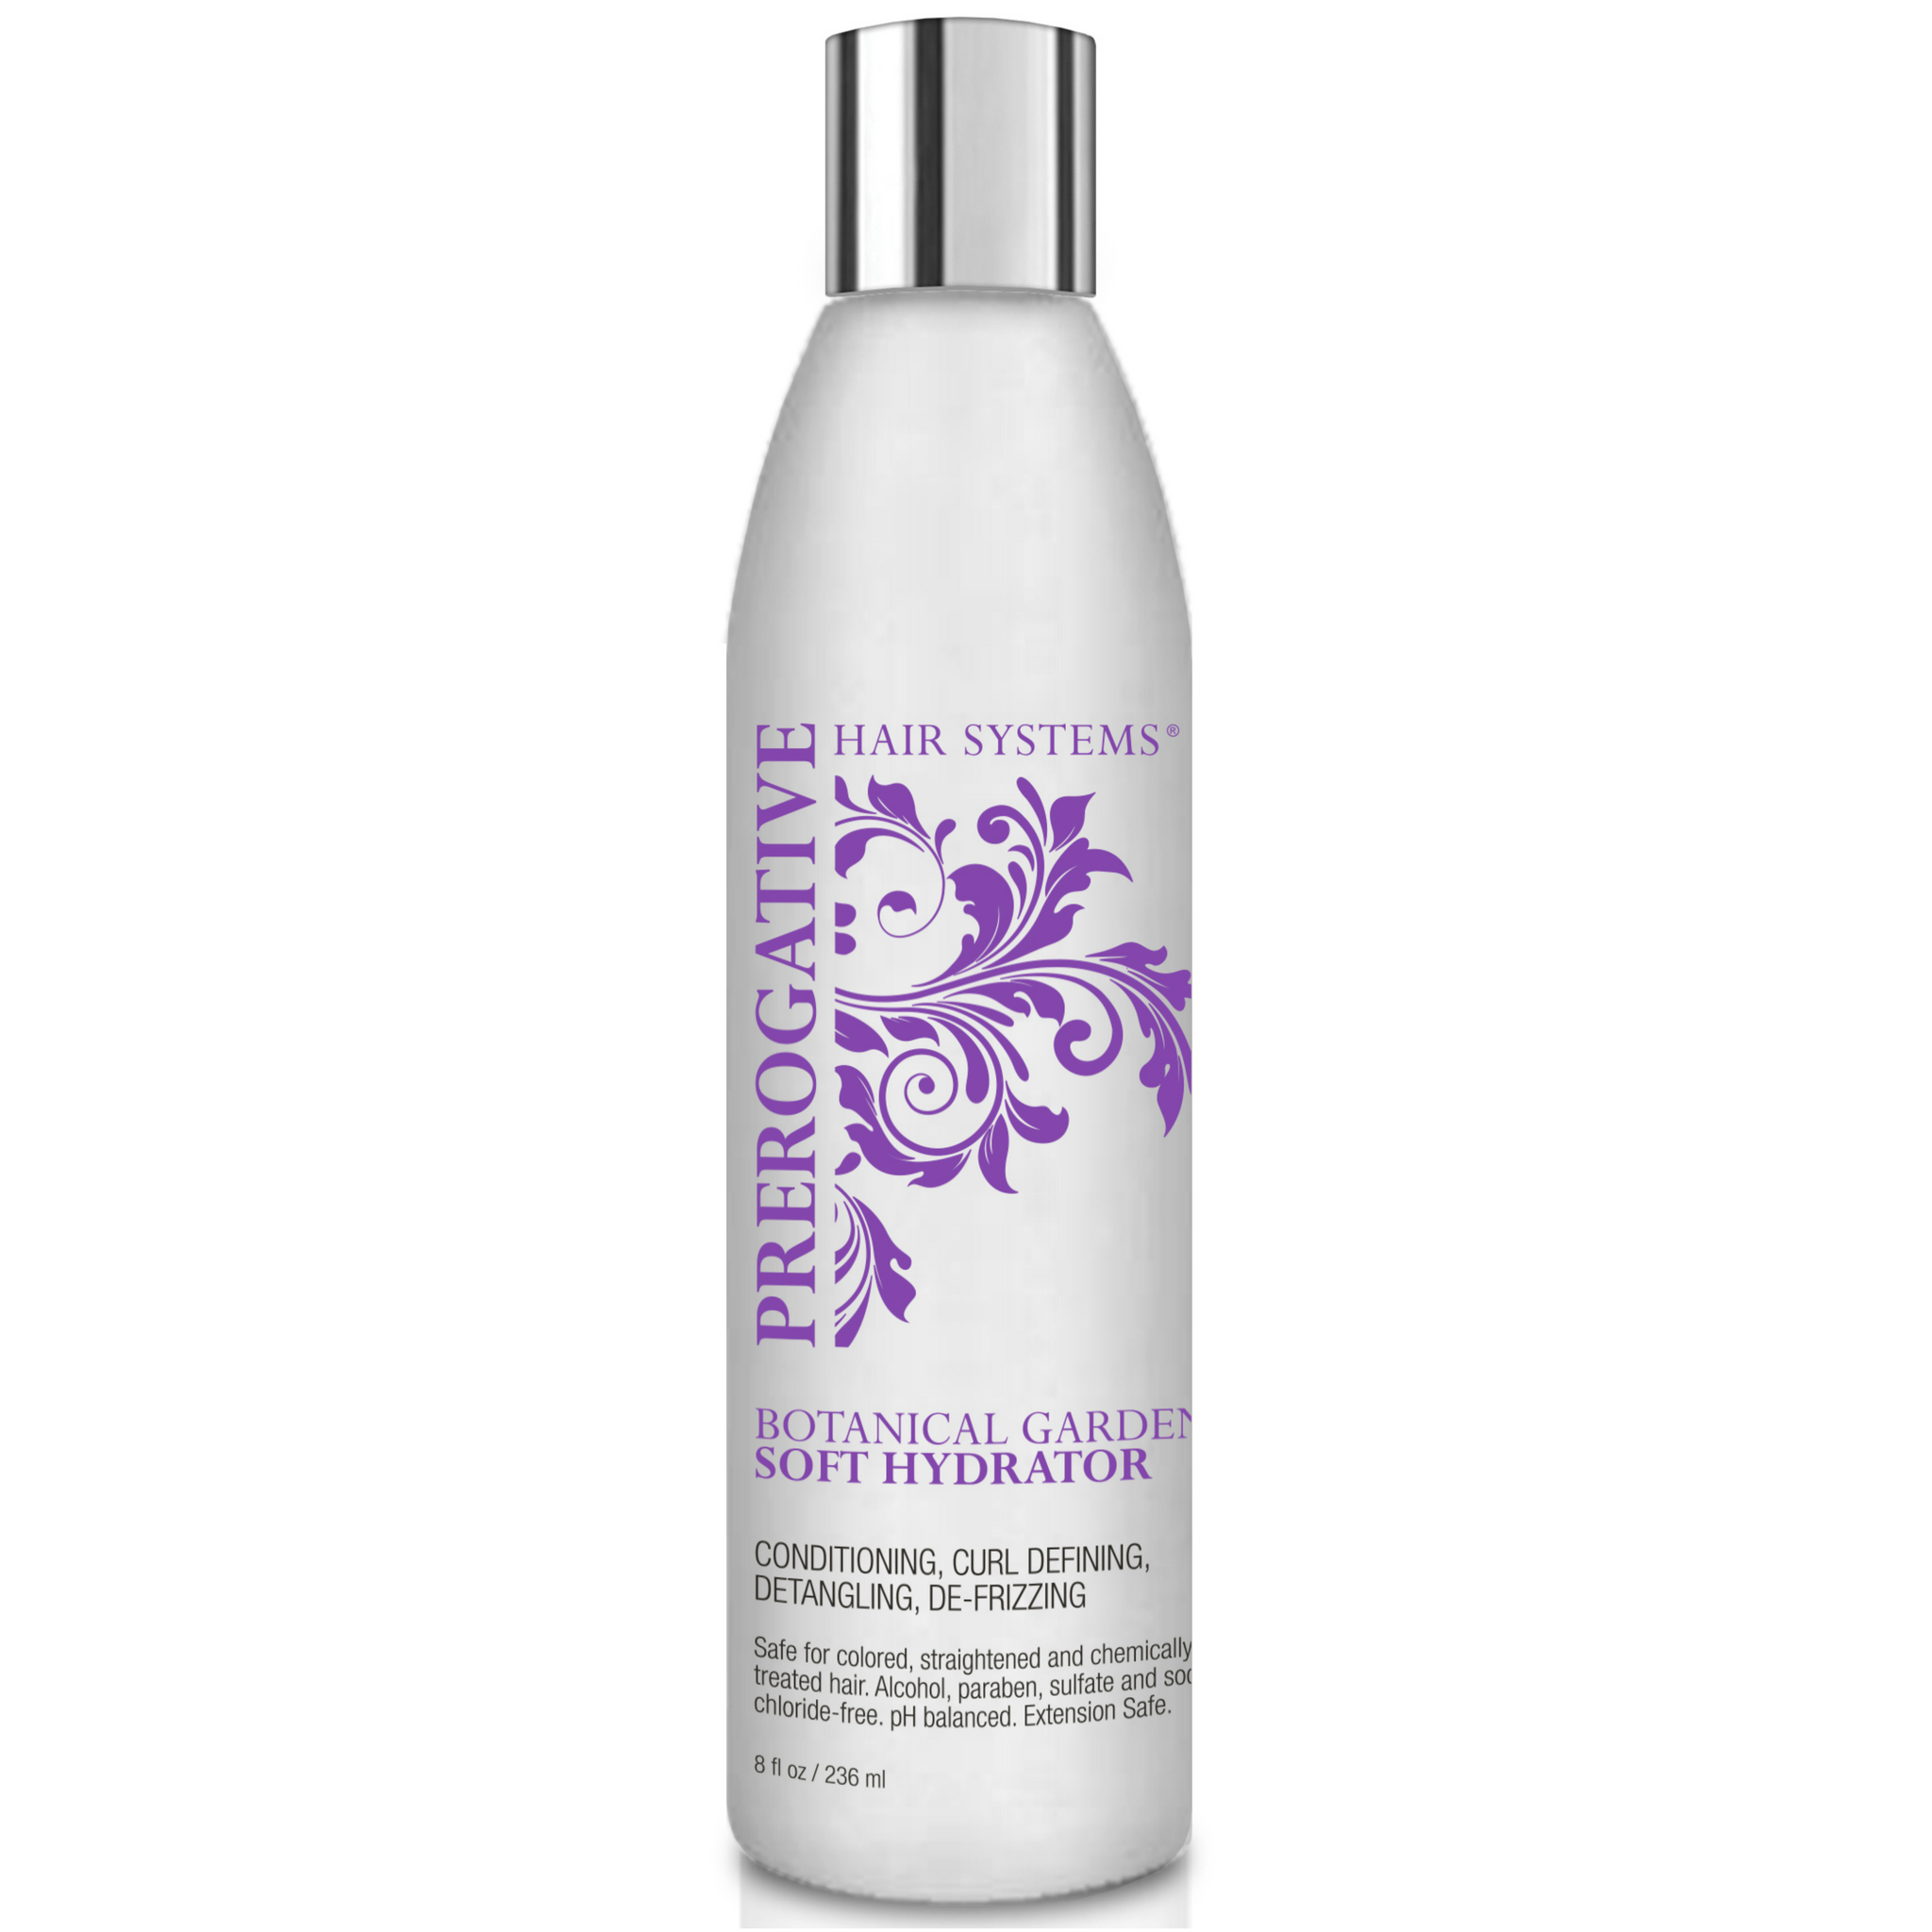 Botanical Garden Soft Hydrator Natural Hair Conditioning Product